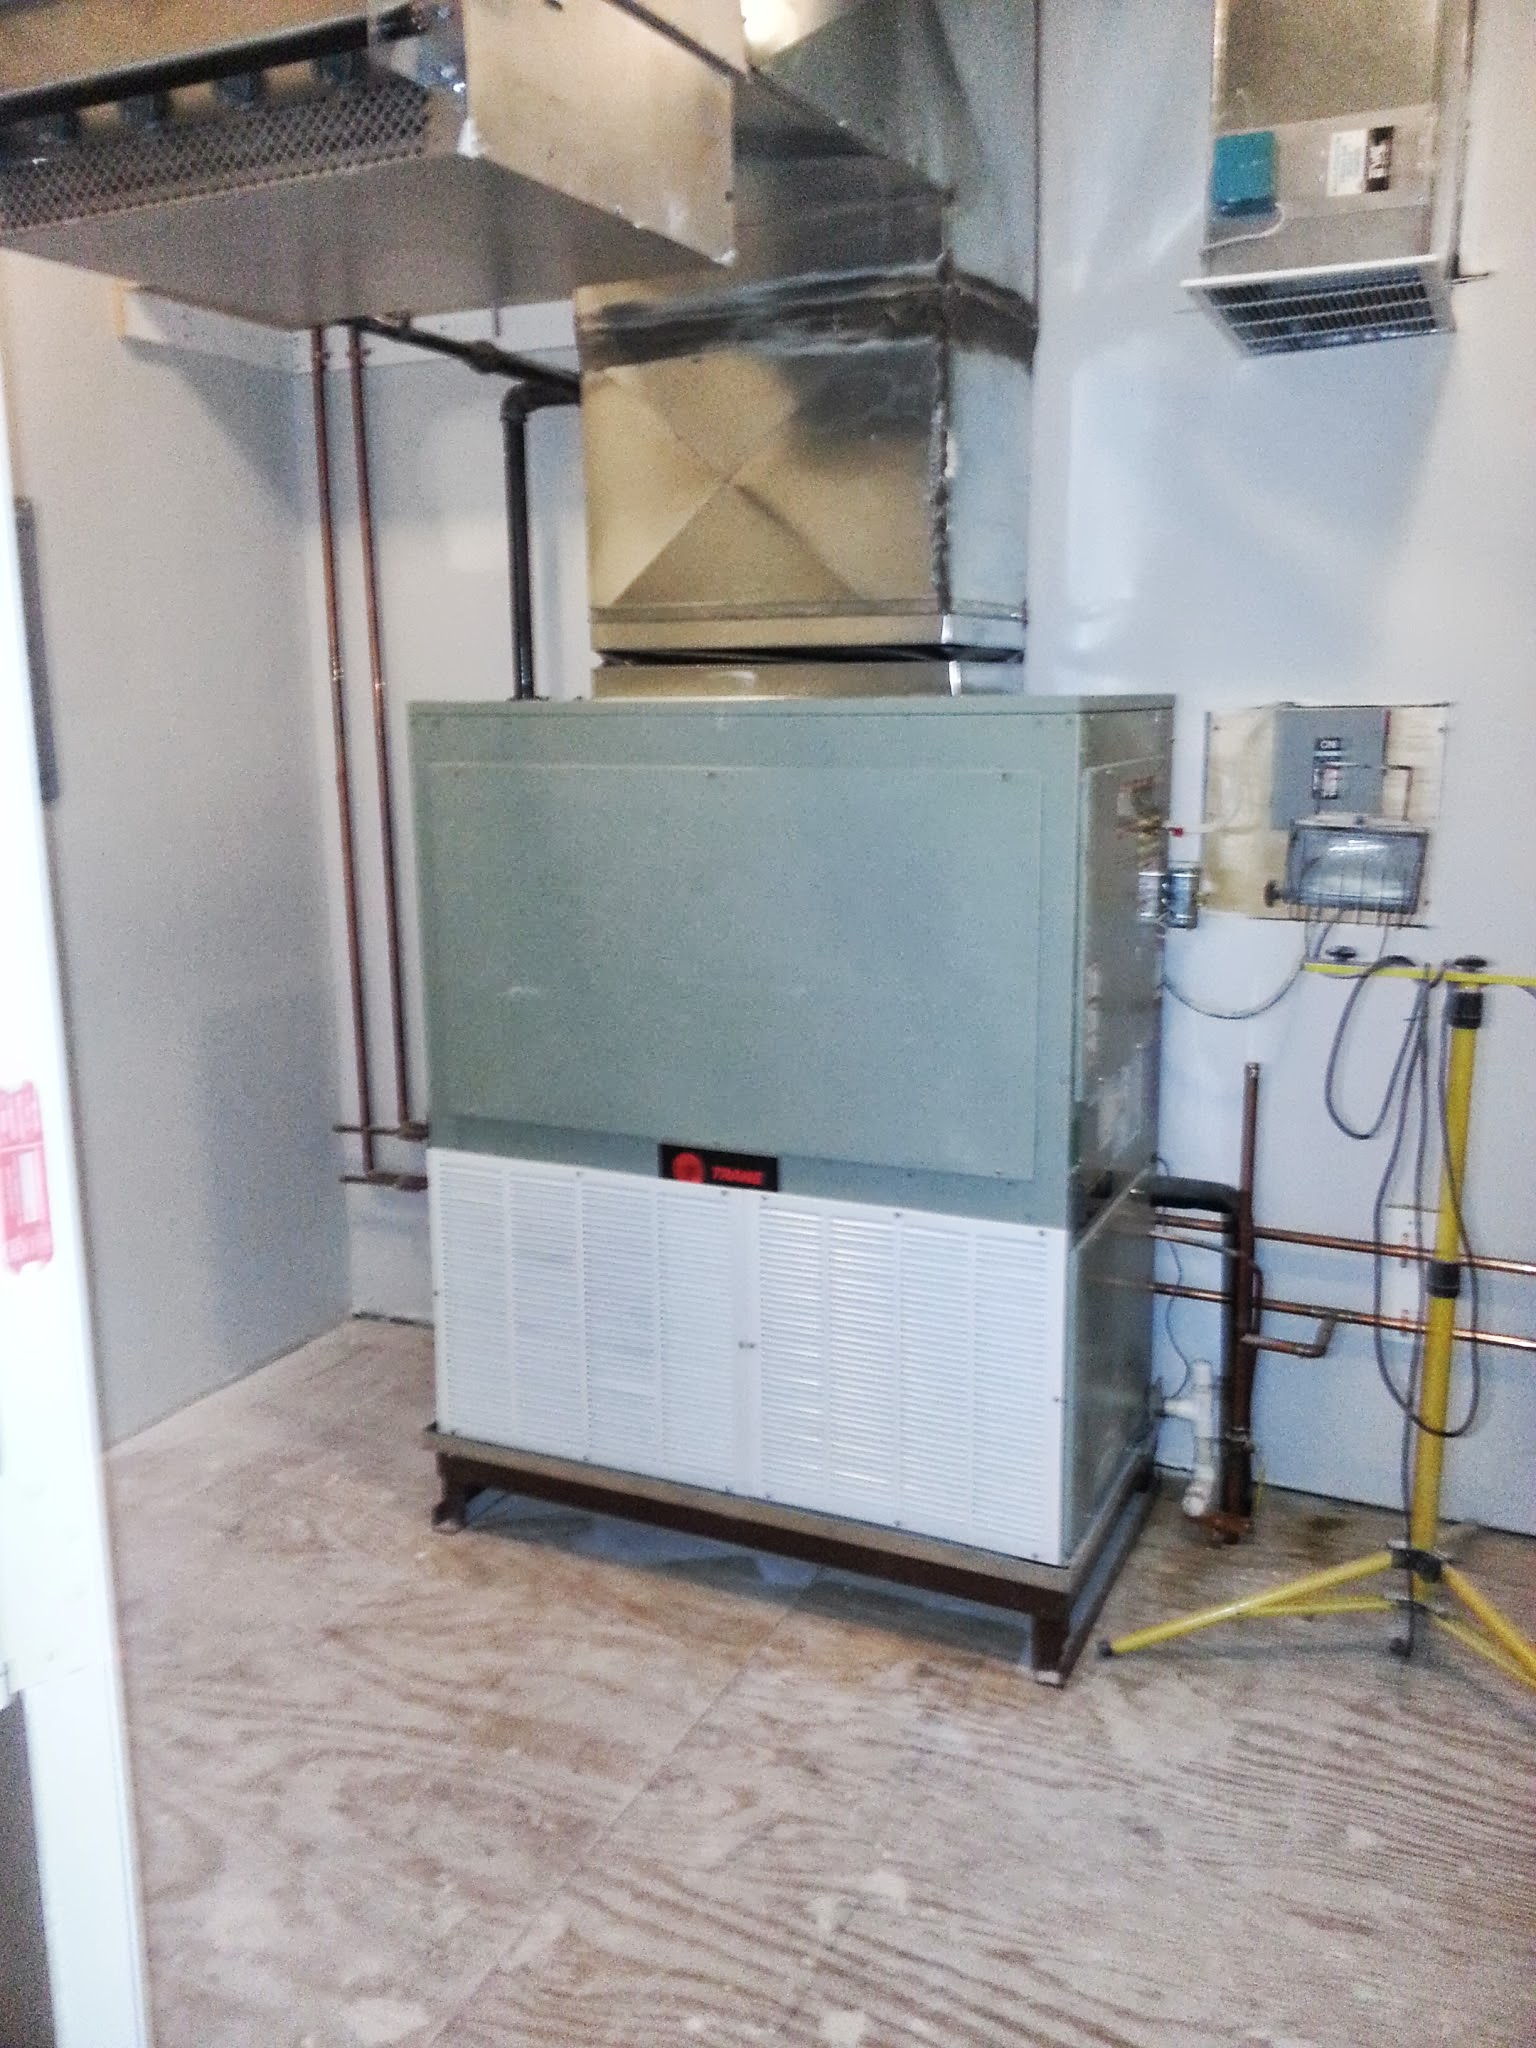 Smart Heating Amp Cooling Systems Inc Hicksville New